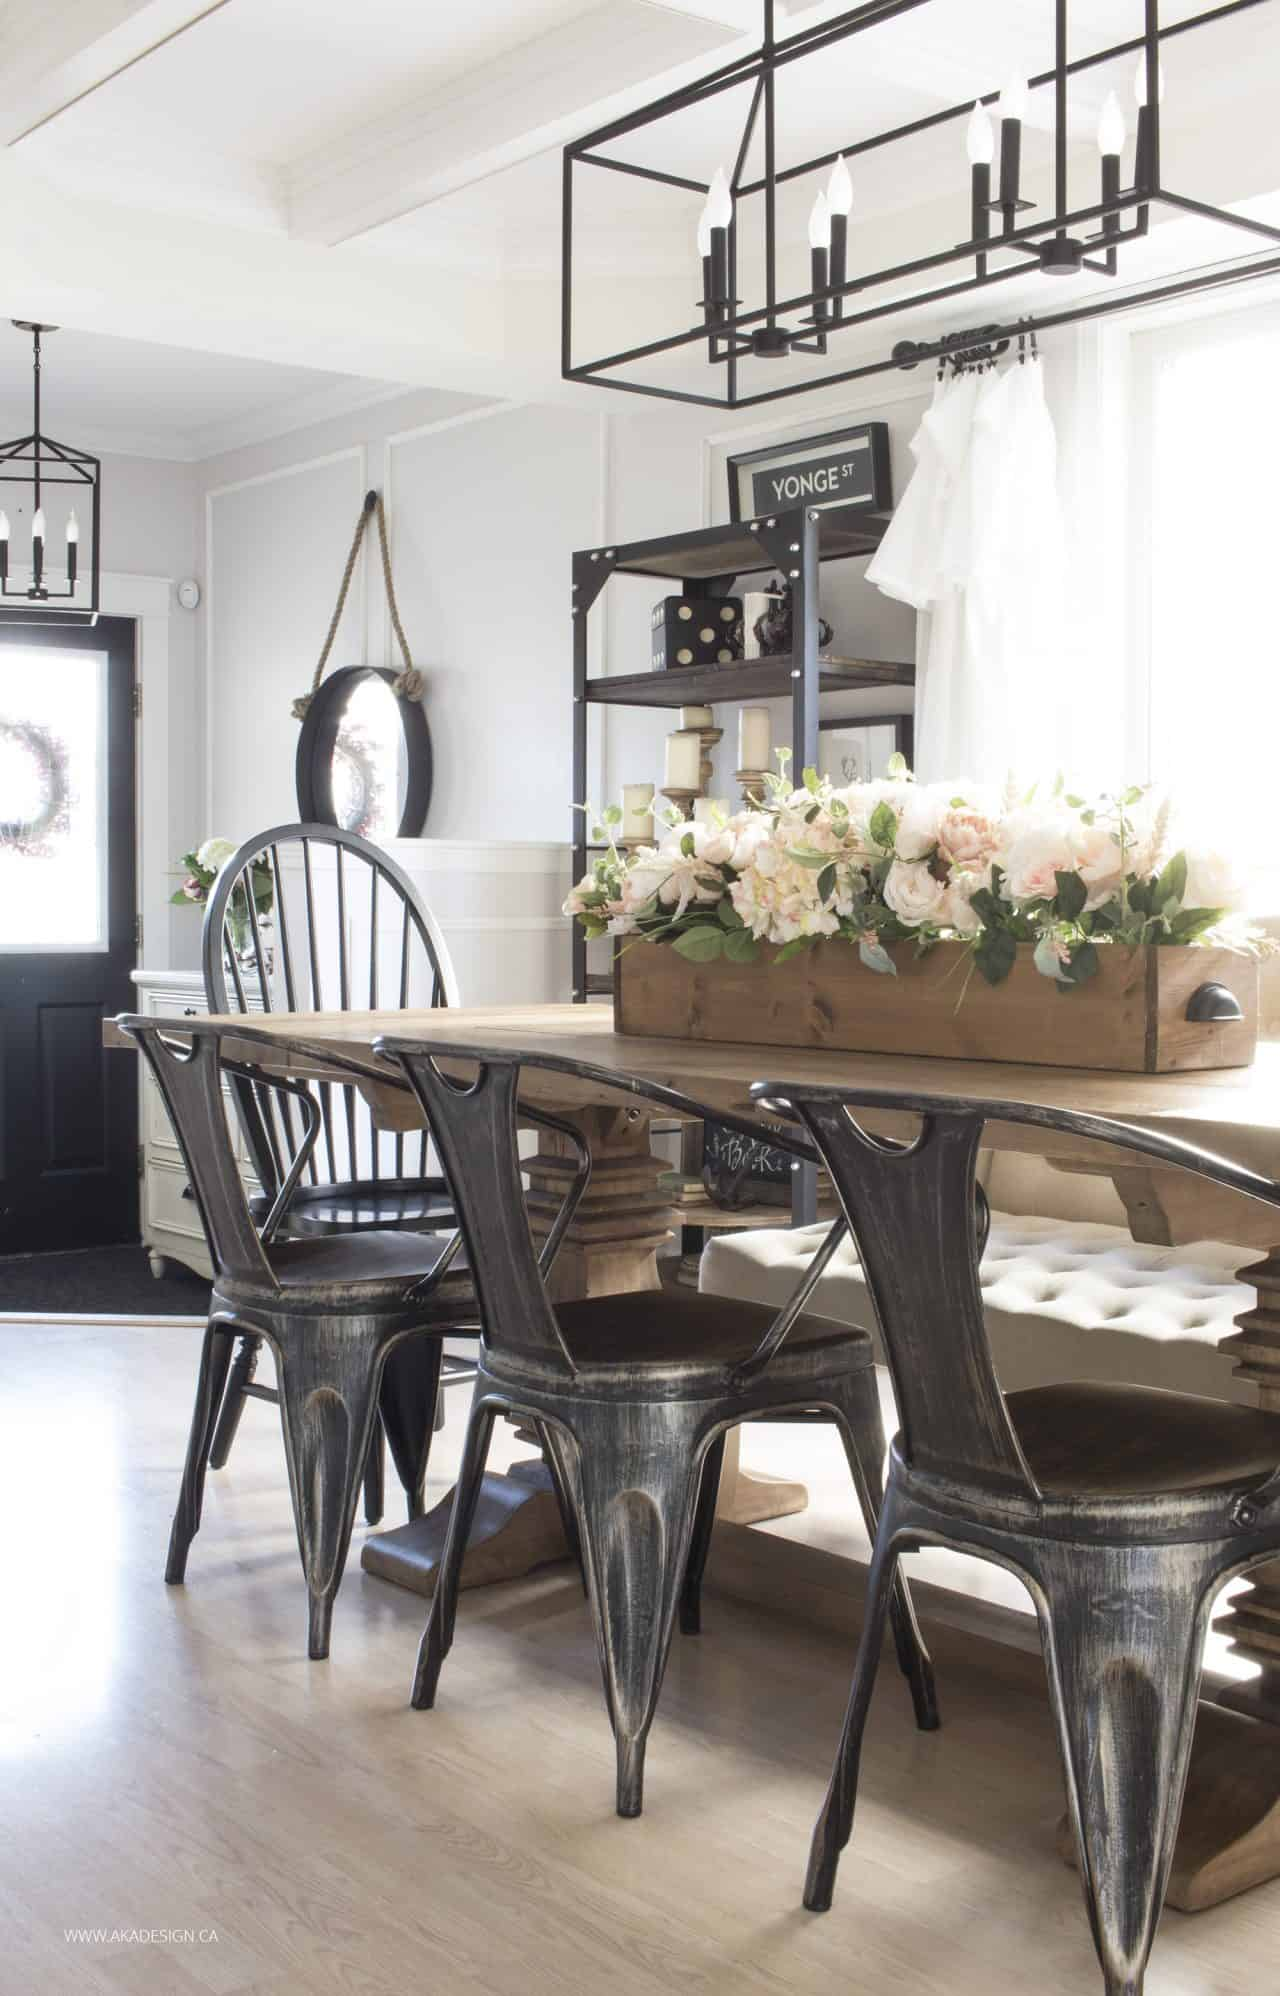 Large Kitchen Island Centerpieces Our Current House Tour - Modern Farmhouse Style In The Suburbs